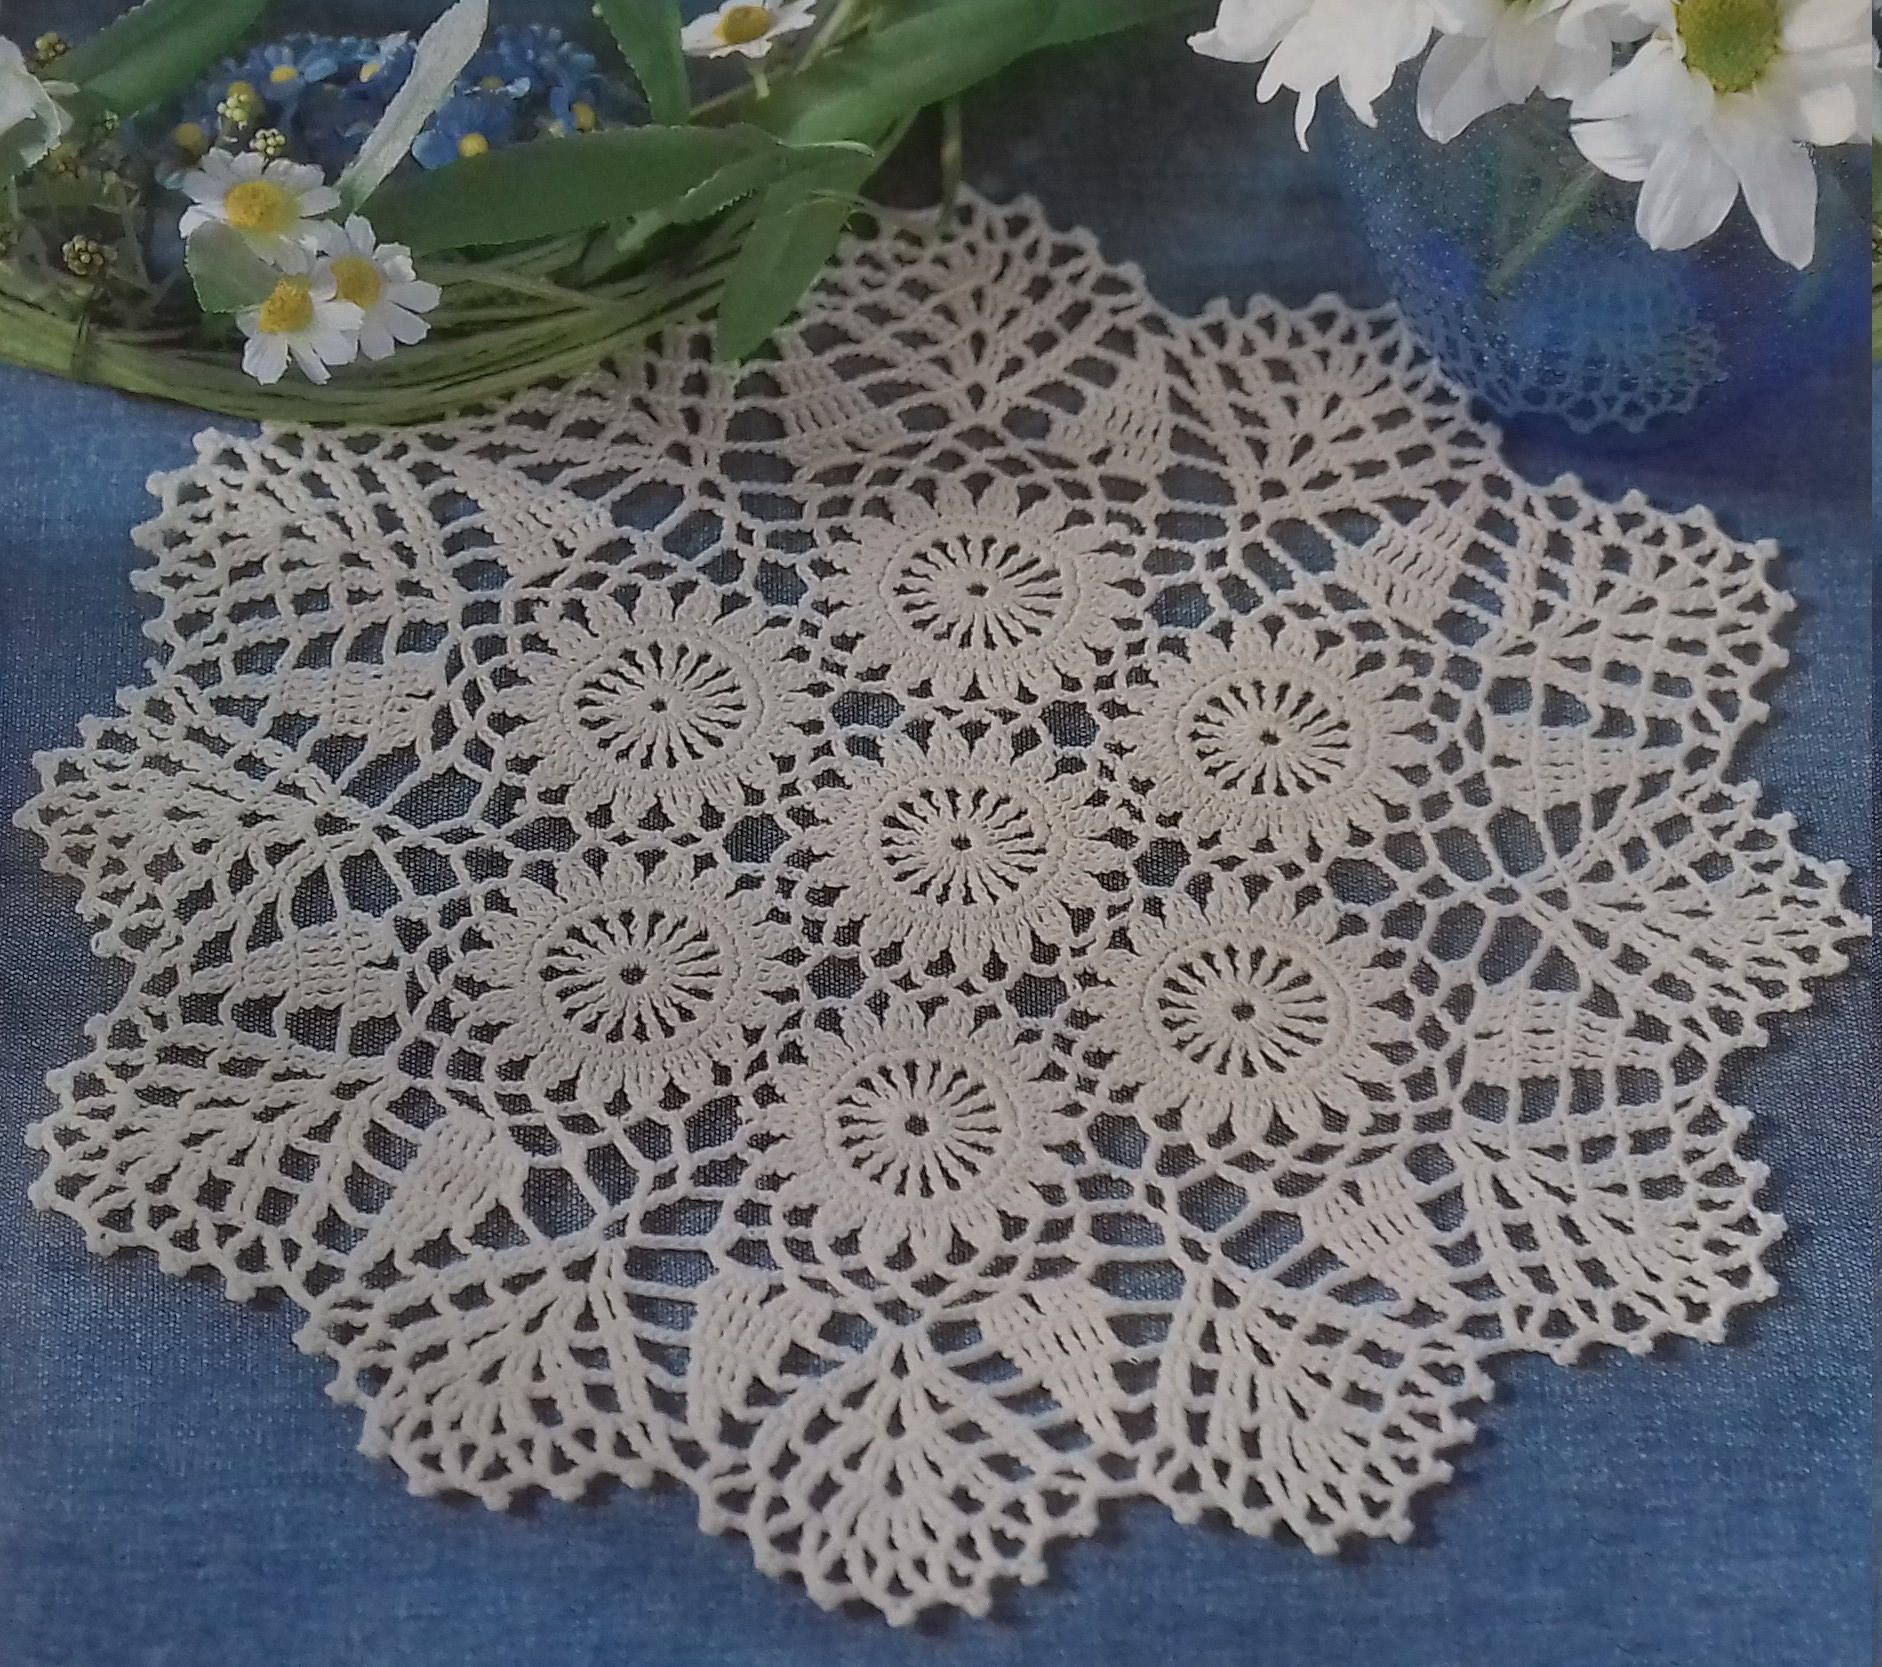 Hand crochet doily cotton lace home dcor vintage crochet pattern hand crochet doily cotton lace home dcor vintage crochet pattern 10 inch cozy house antique style bankloansurffo Image collections